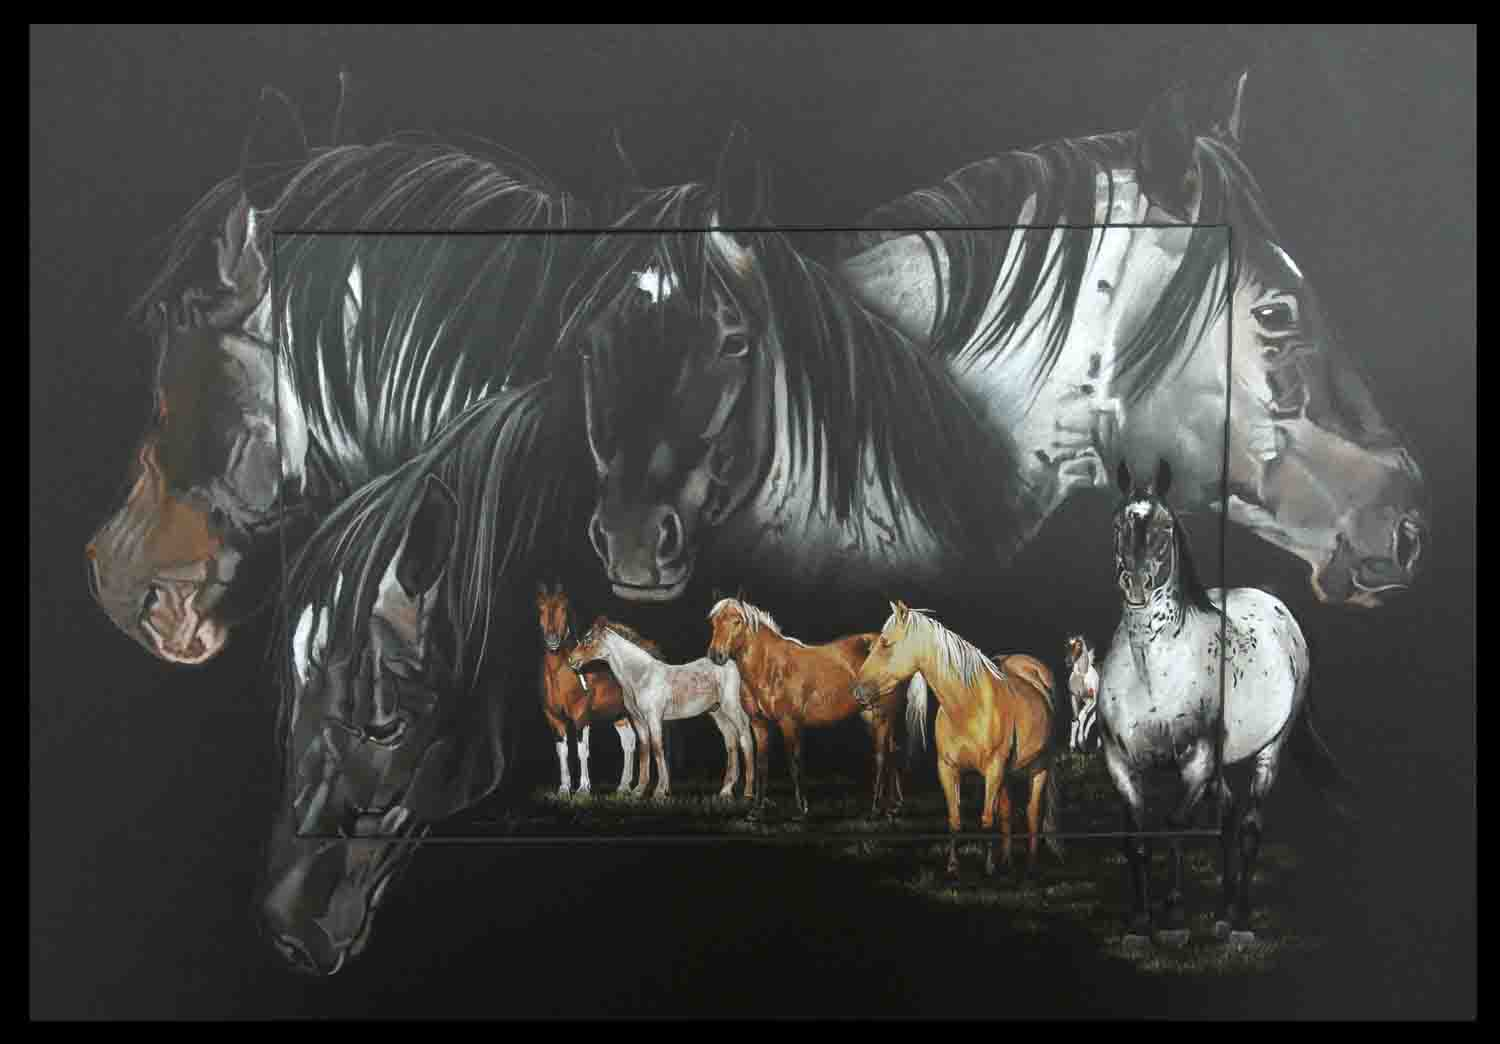 INDIGO, stallion - pastel sec (soft pastel) - 50x70cm - AV for sale